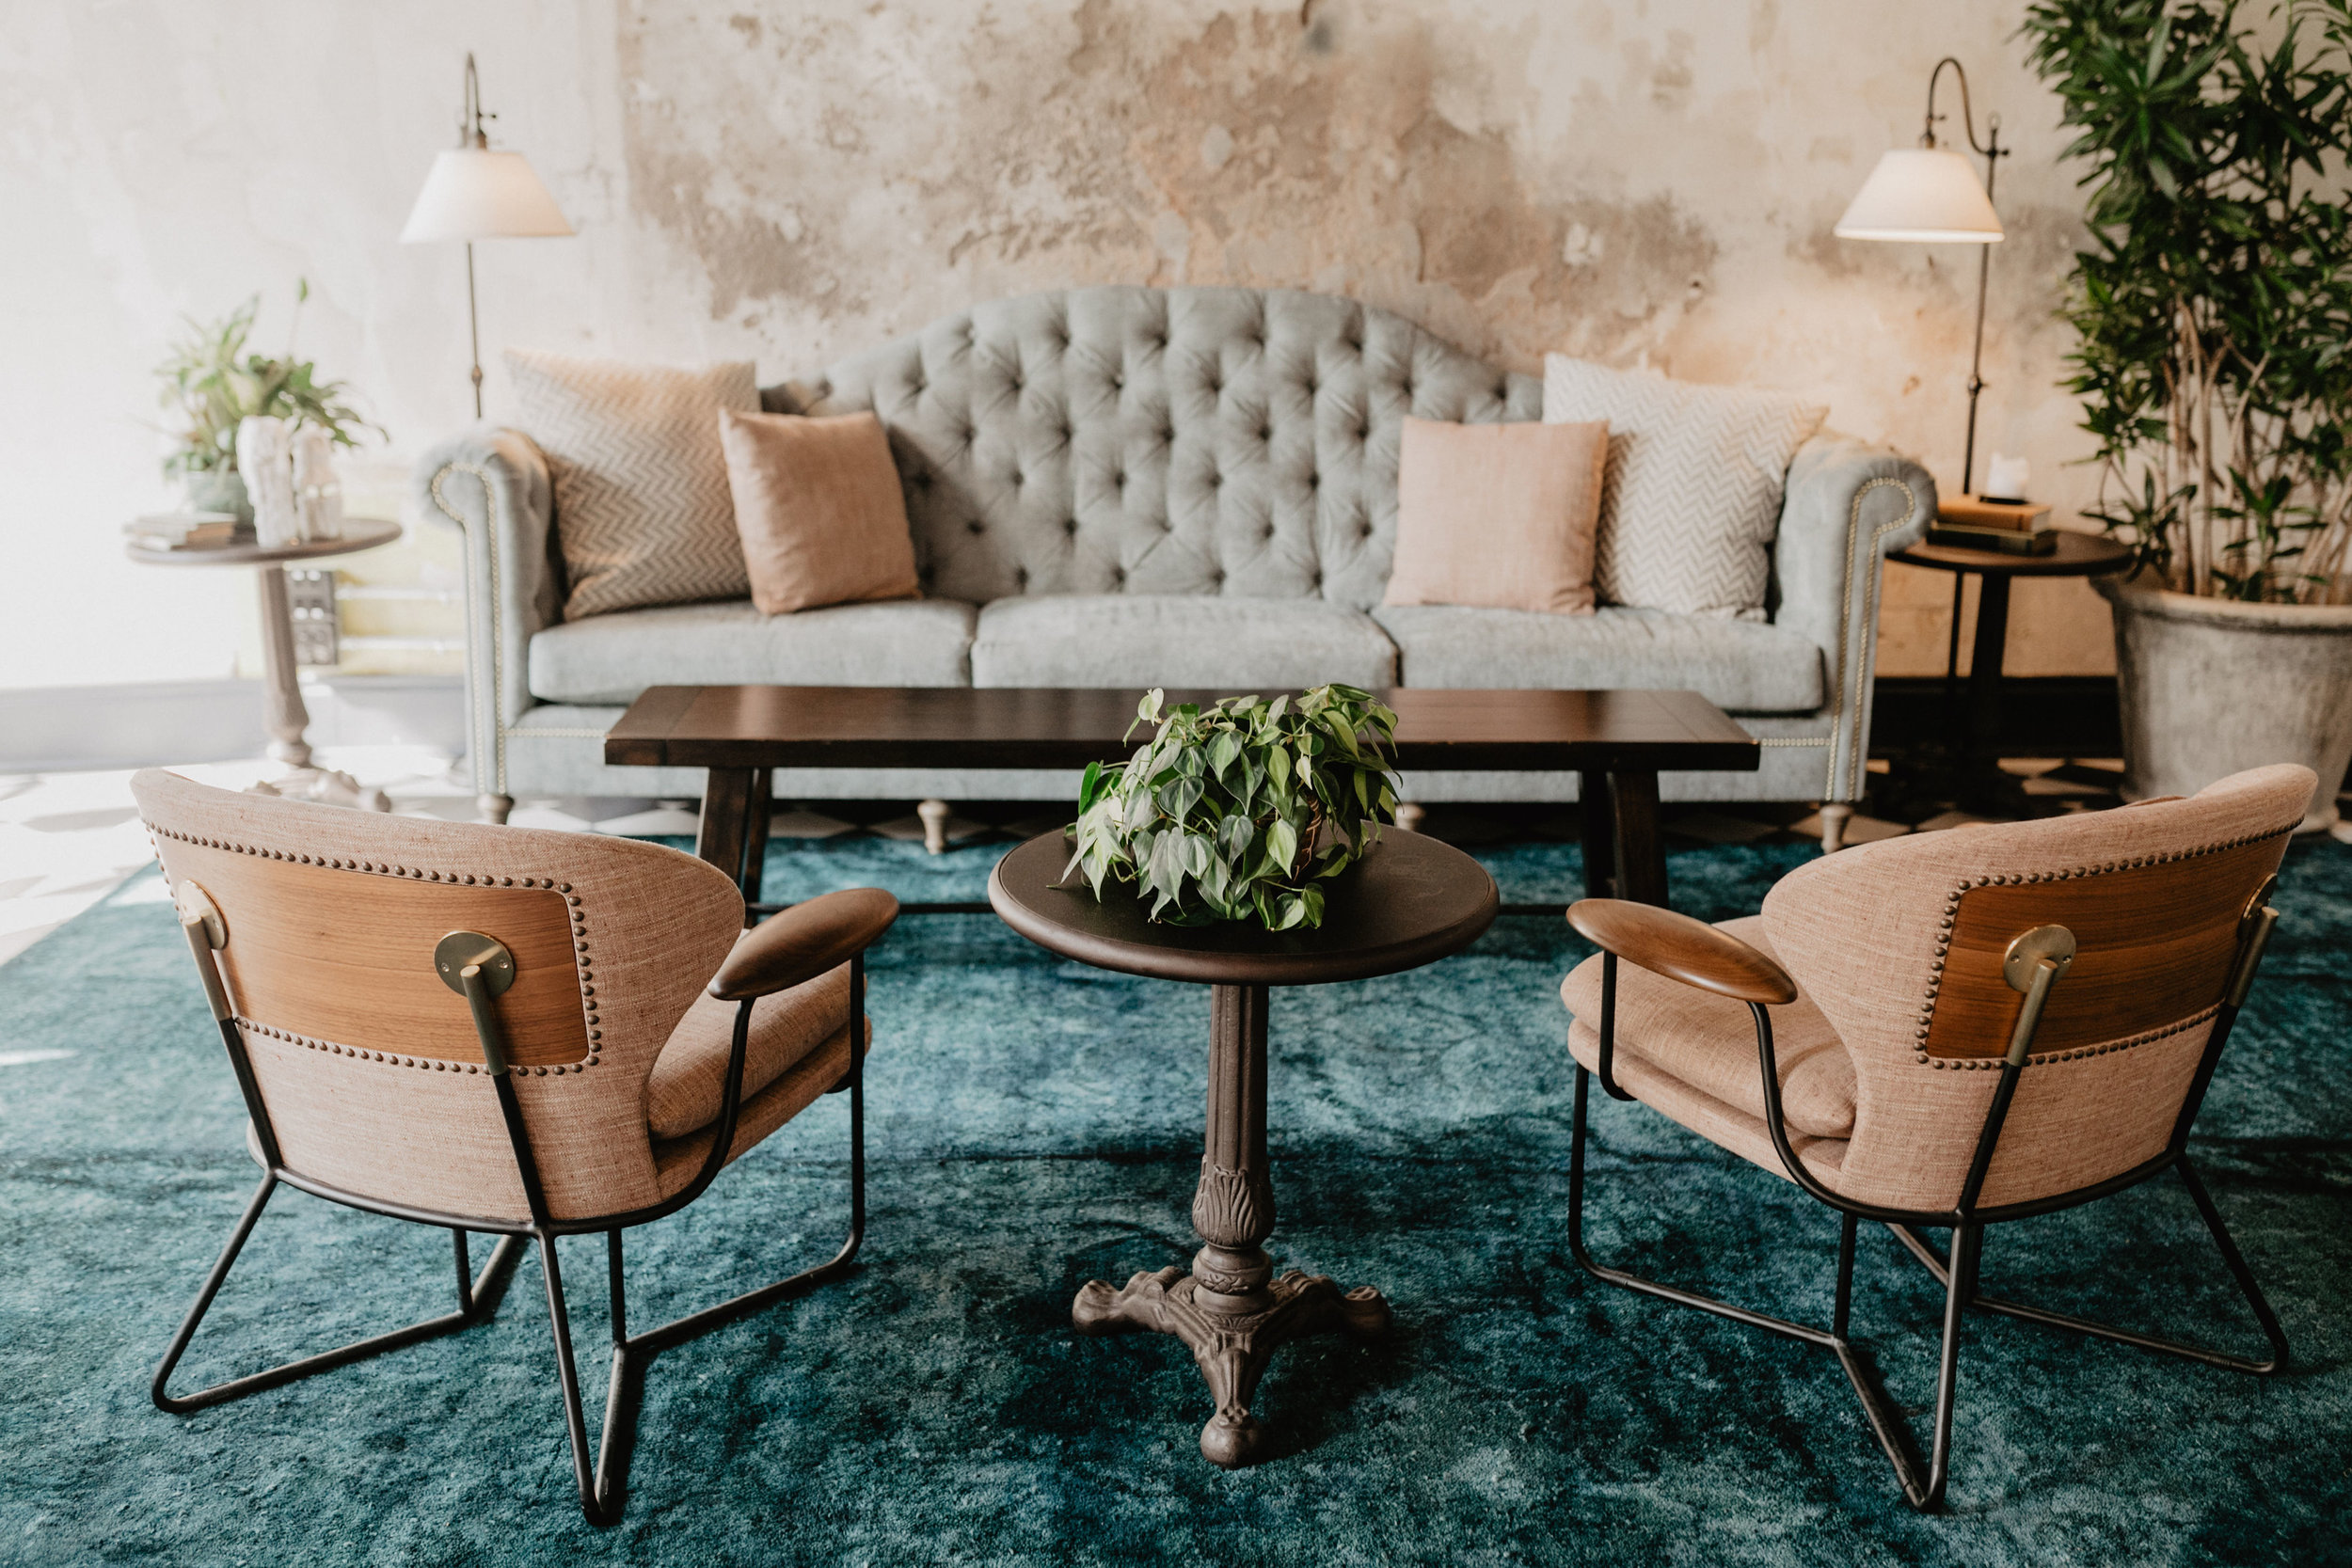 Let's talk NOLA weddings! - Contact us today to set up a no obligation consultation with one of our Lead Wedding Coordinators in New Orleans.